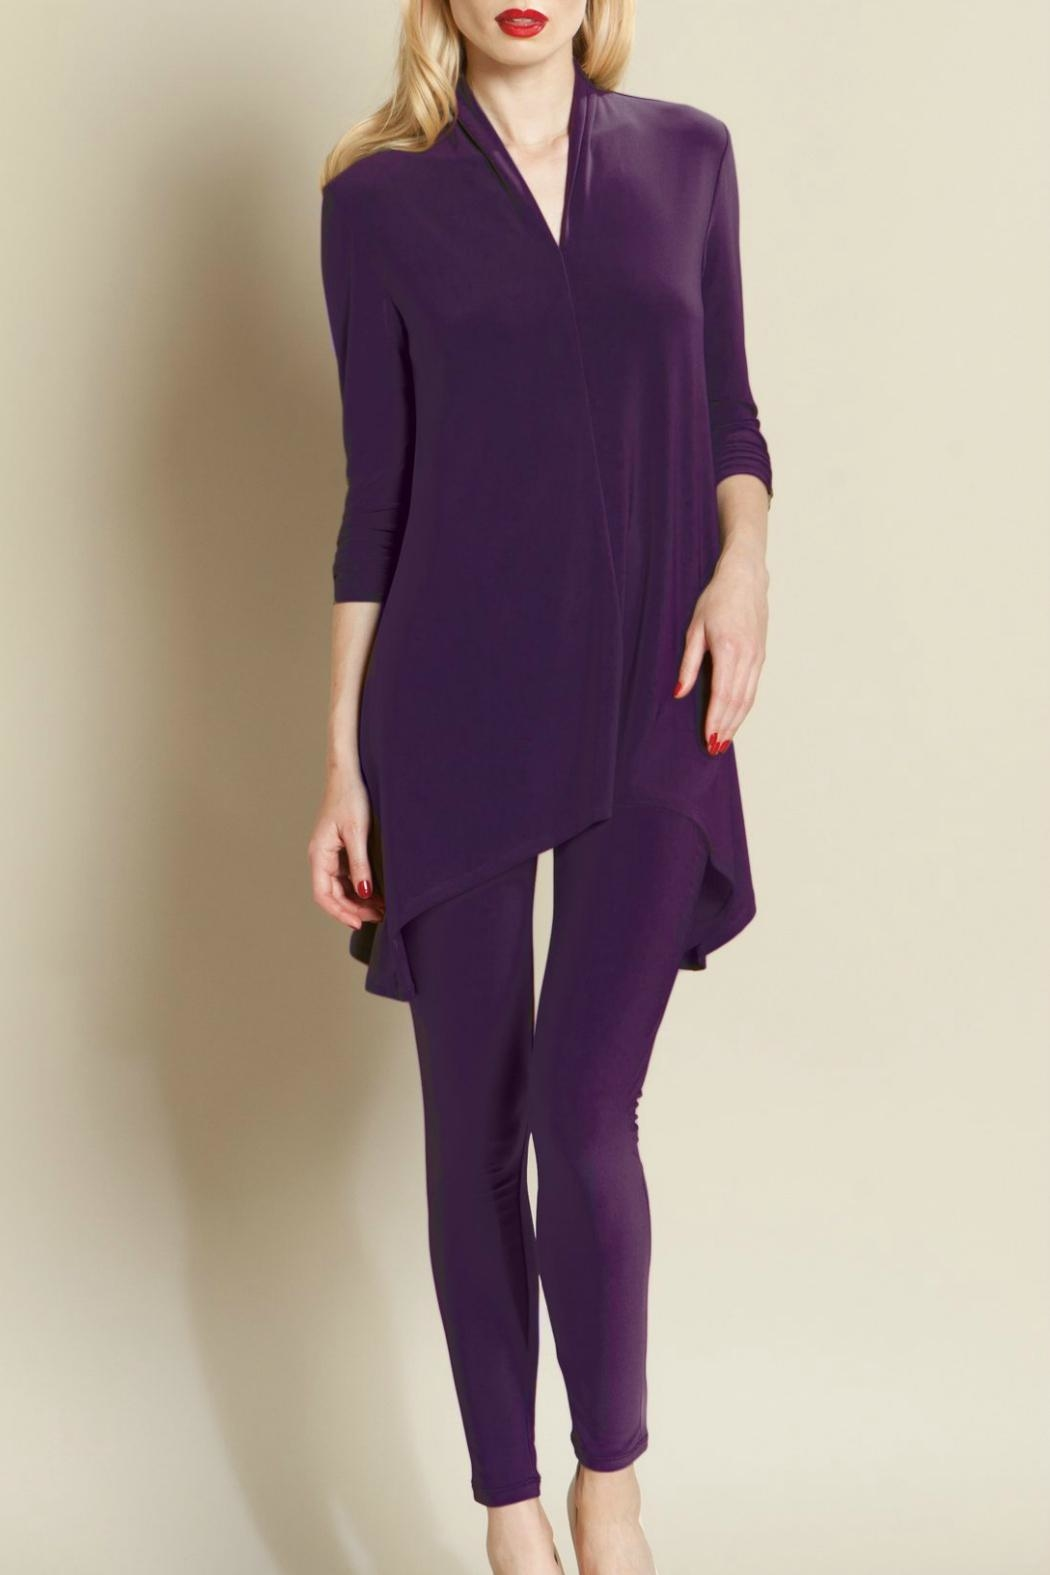 Clara Sunwoo Ruched Sleeve Tunic - Main Image